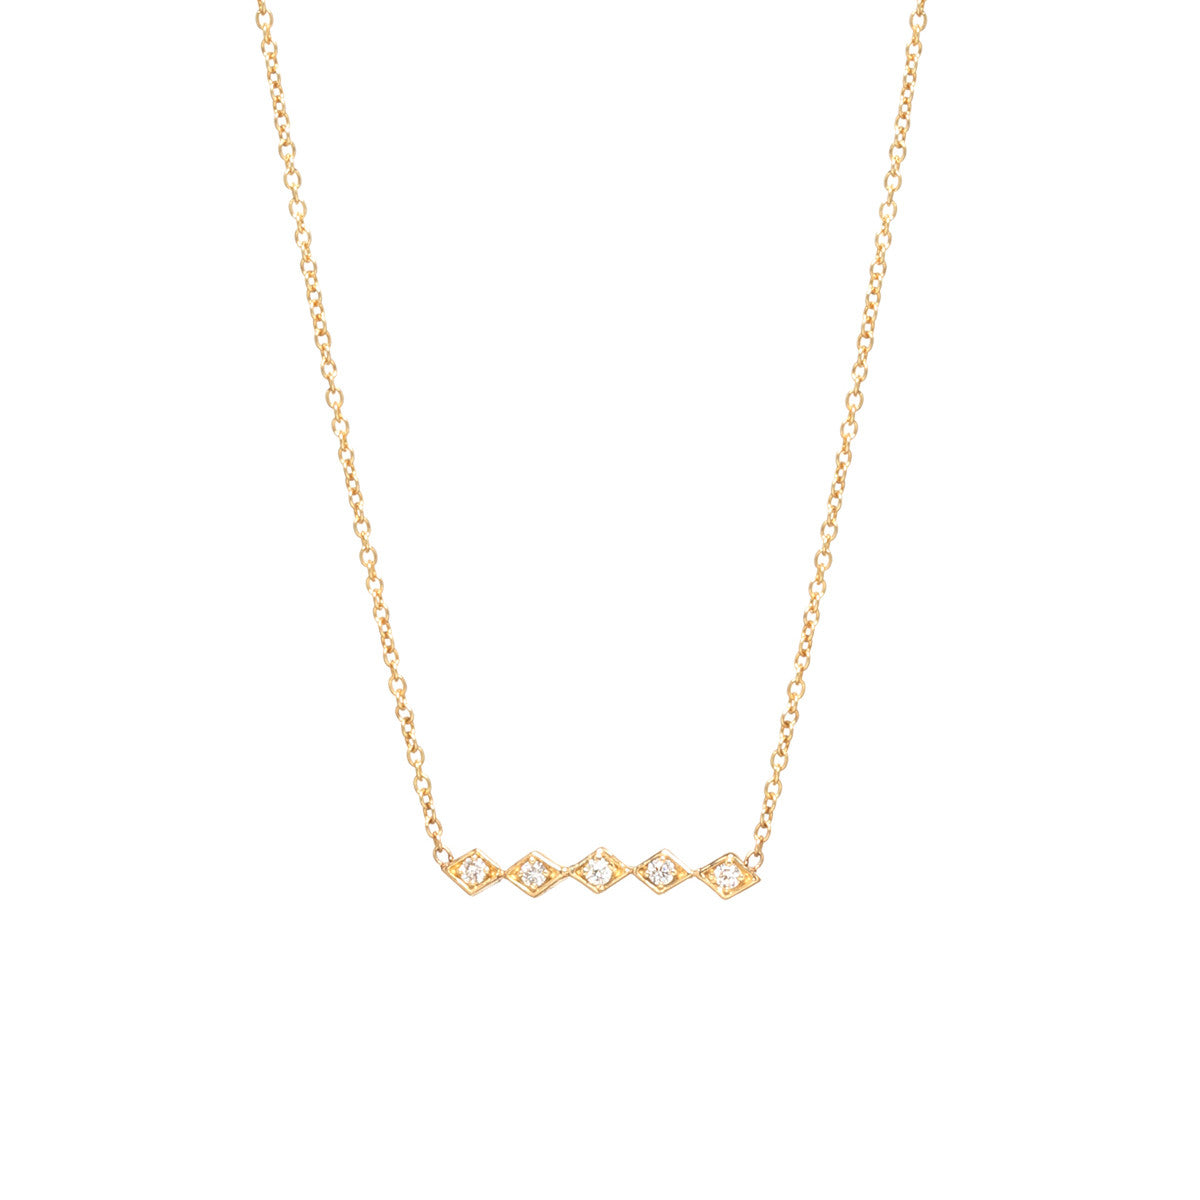 Zoë Chicco 14kt Yellow Gold 5 Horizontal Tiny Diamond Shaped Bar Necklace